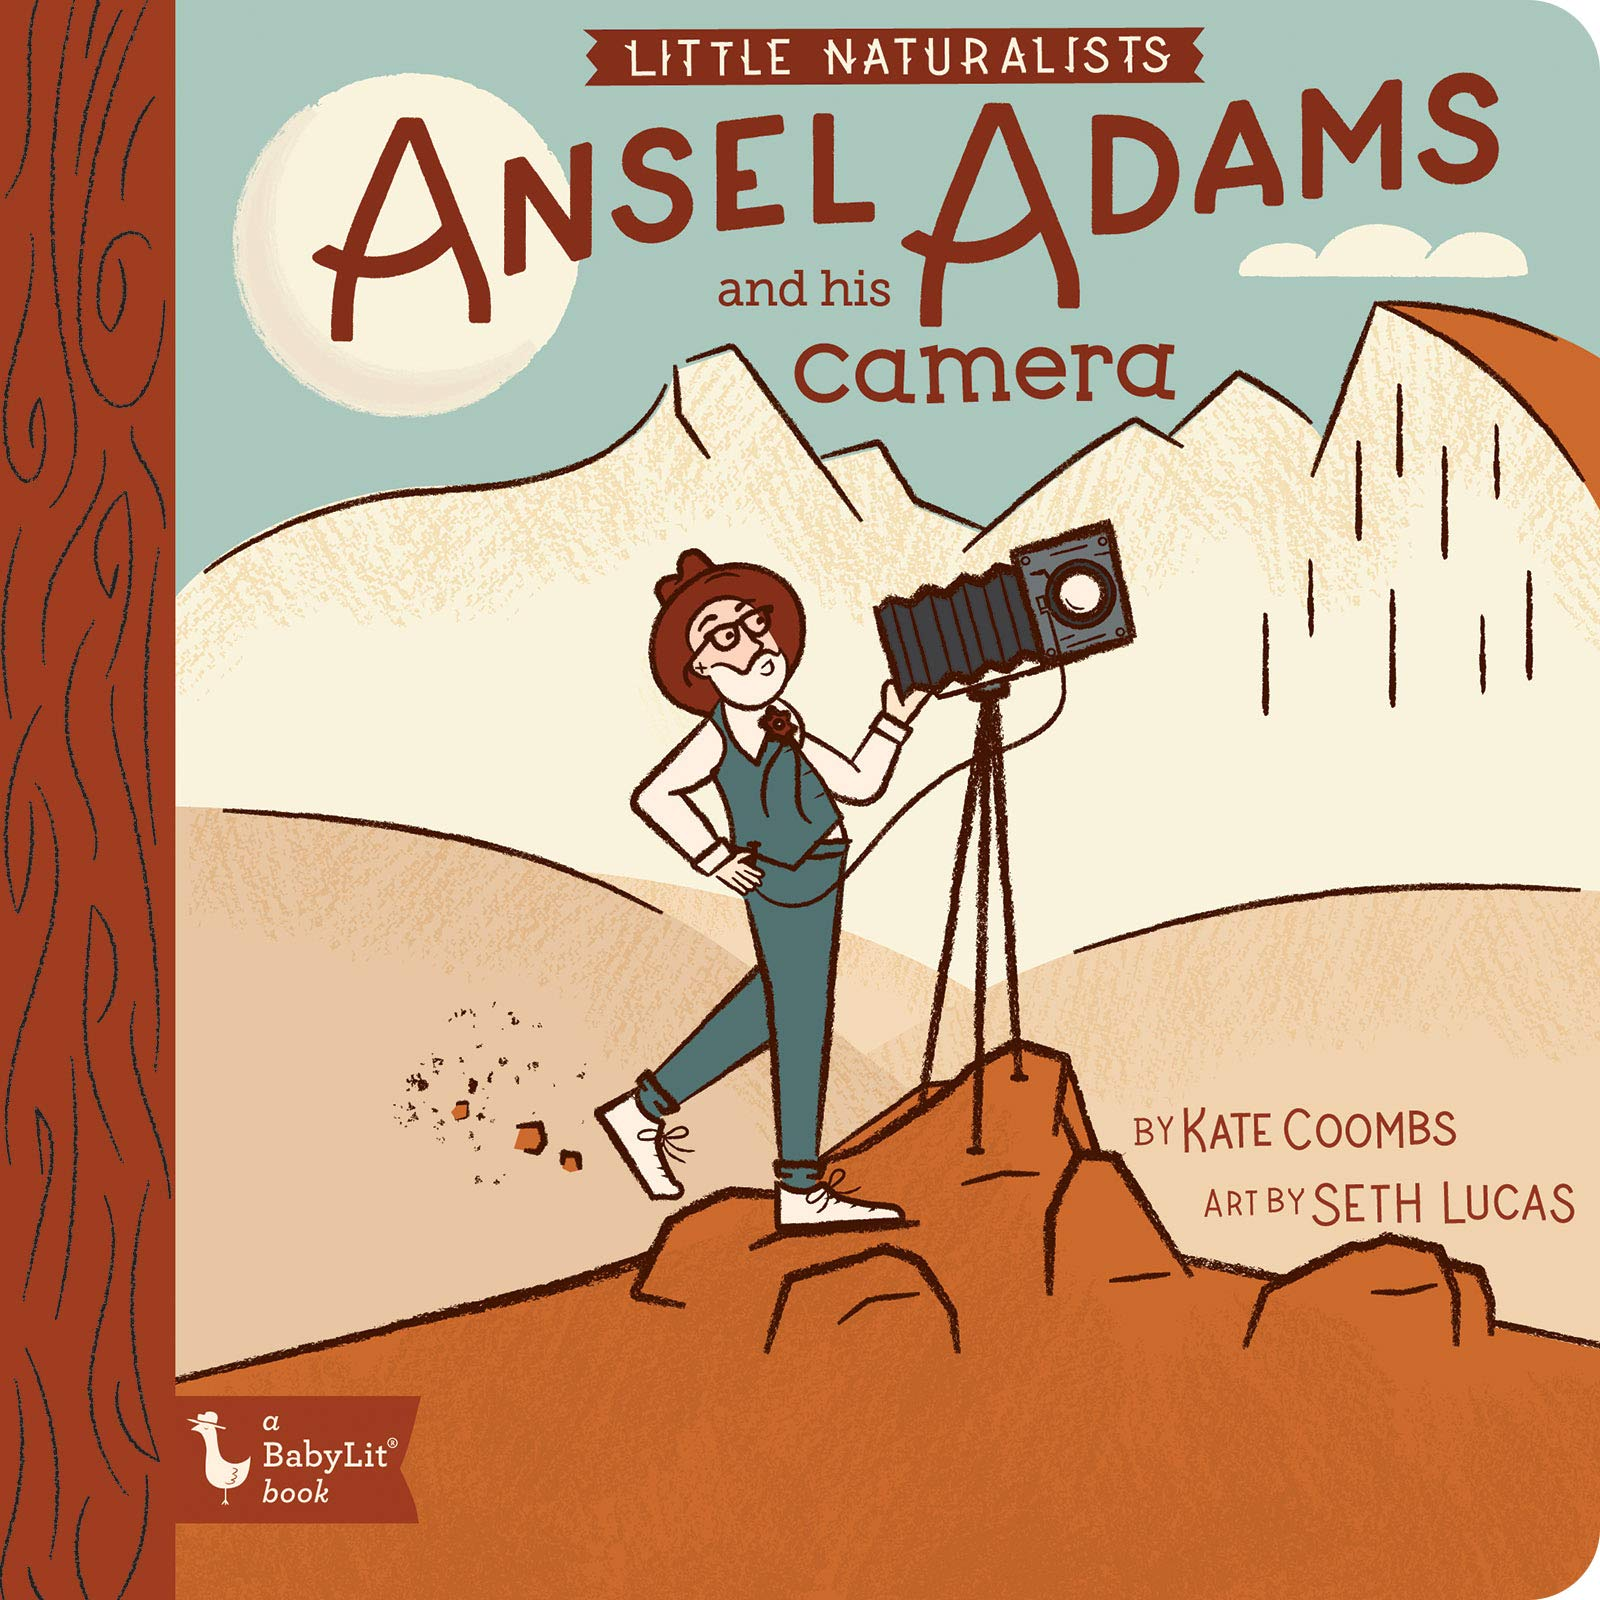 Ansel Adams: Little Naturalists